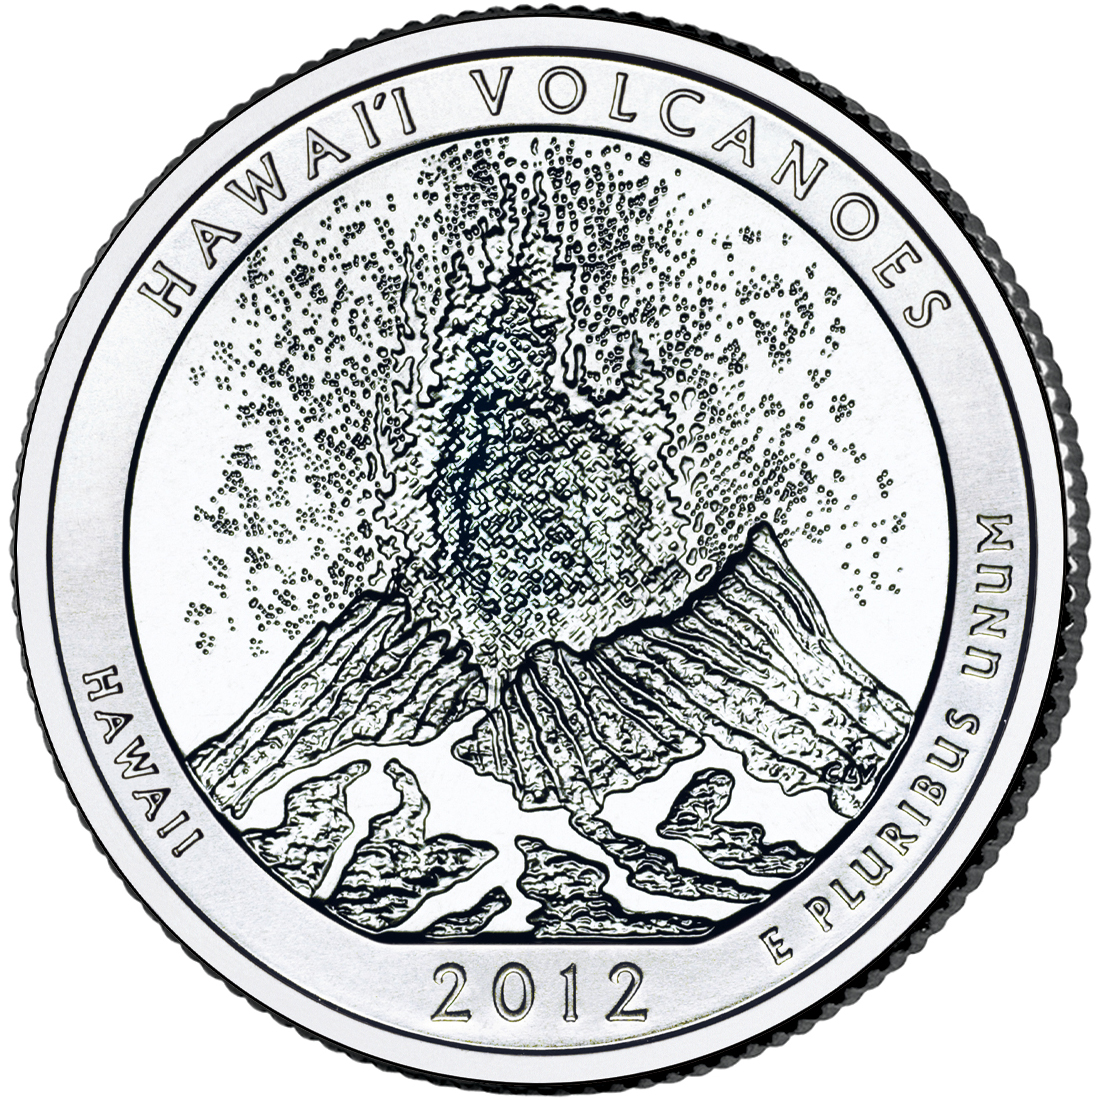 2012 America The Beautiful Quarters Coin Hawaii Volcanoes Hawaii Uncirculated Reverse